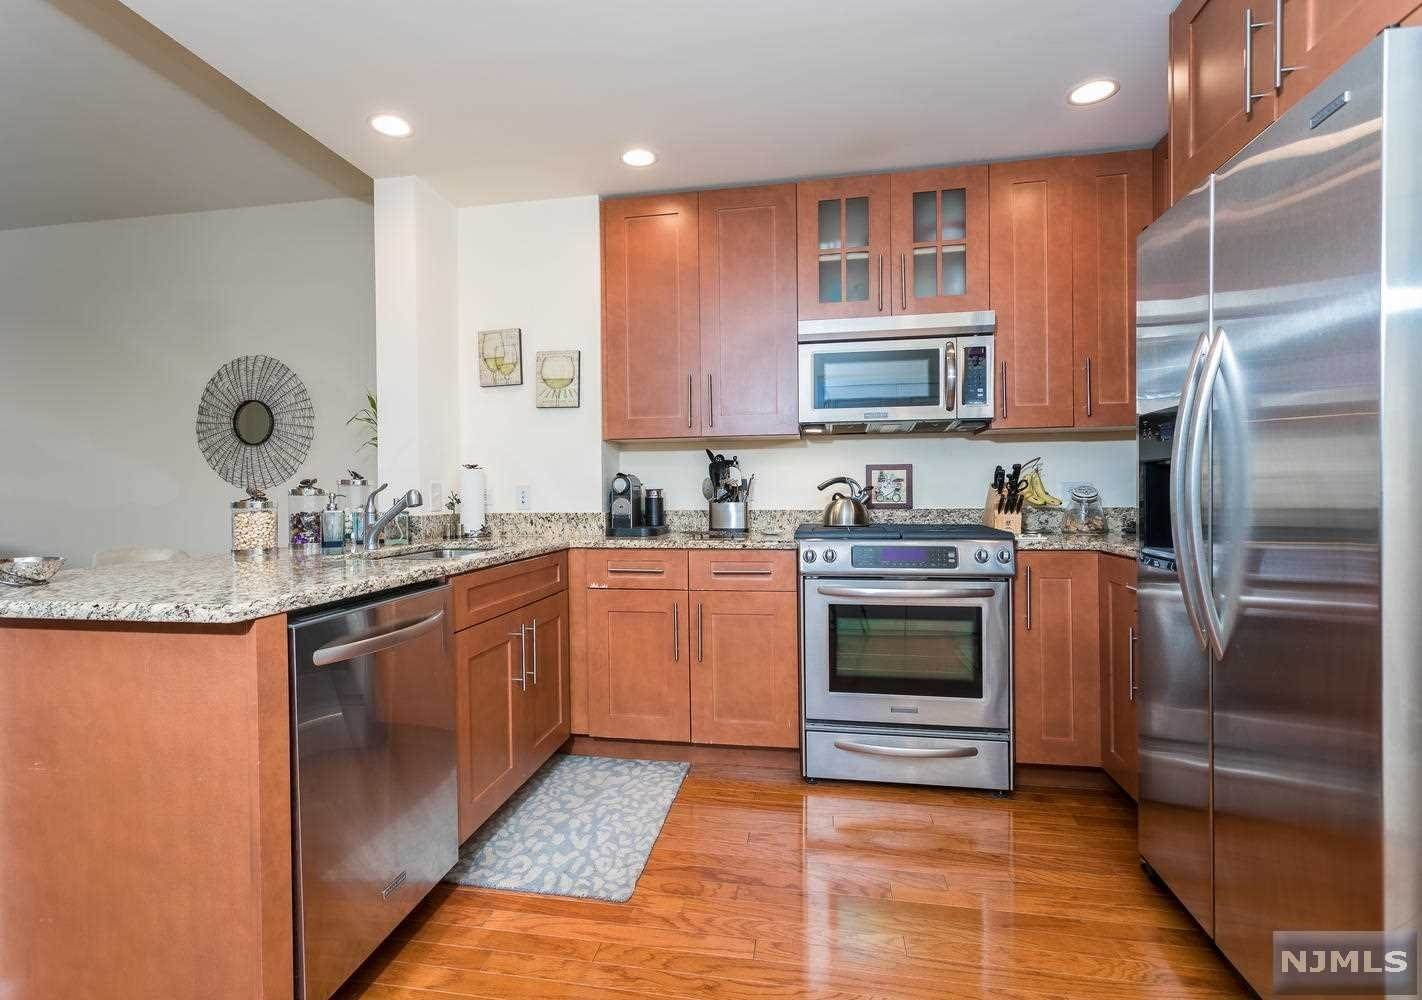 7. Condominium for Sale at 1125 Maxwell Lane #630 Hoboken, New Jersey, 07030 United States